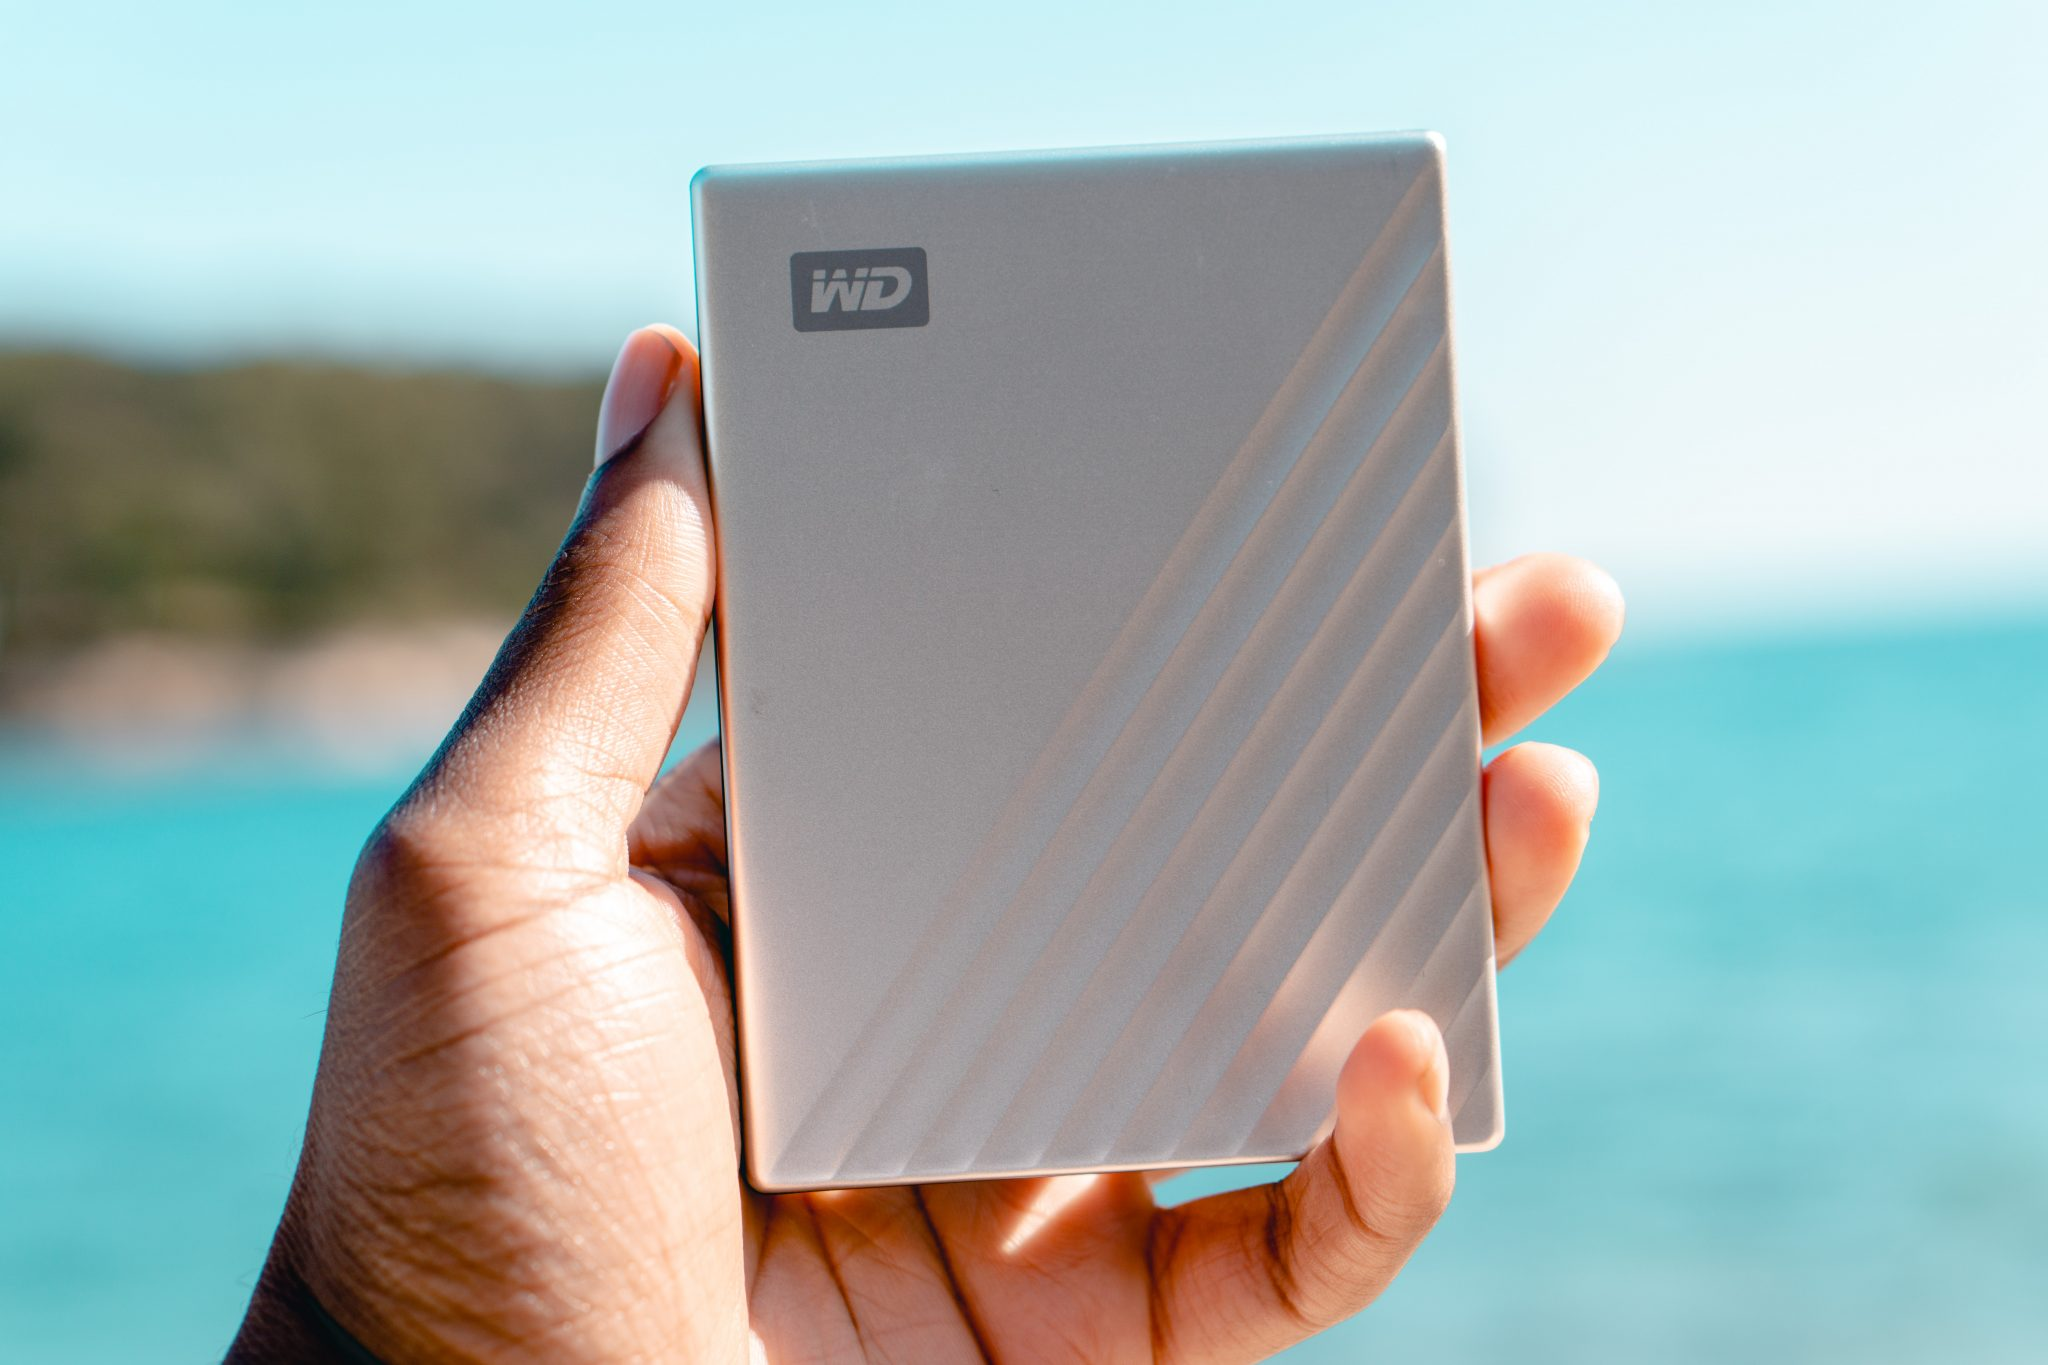 Holding the WD 1TB My Passport Ultra Silver Portable External Hard Drive